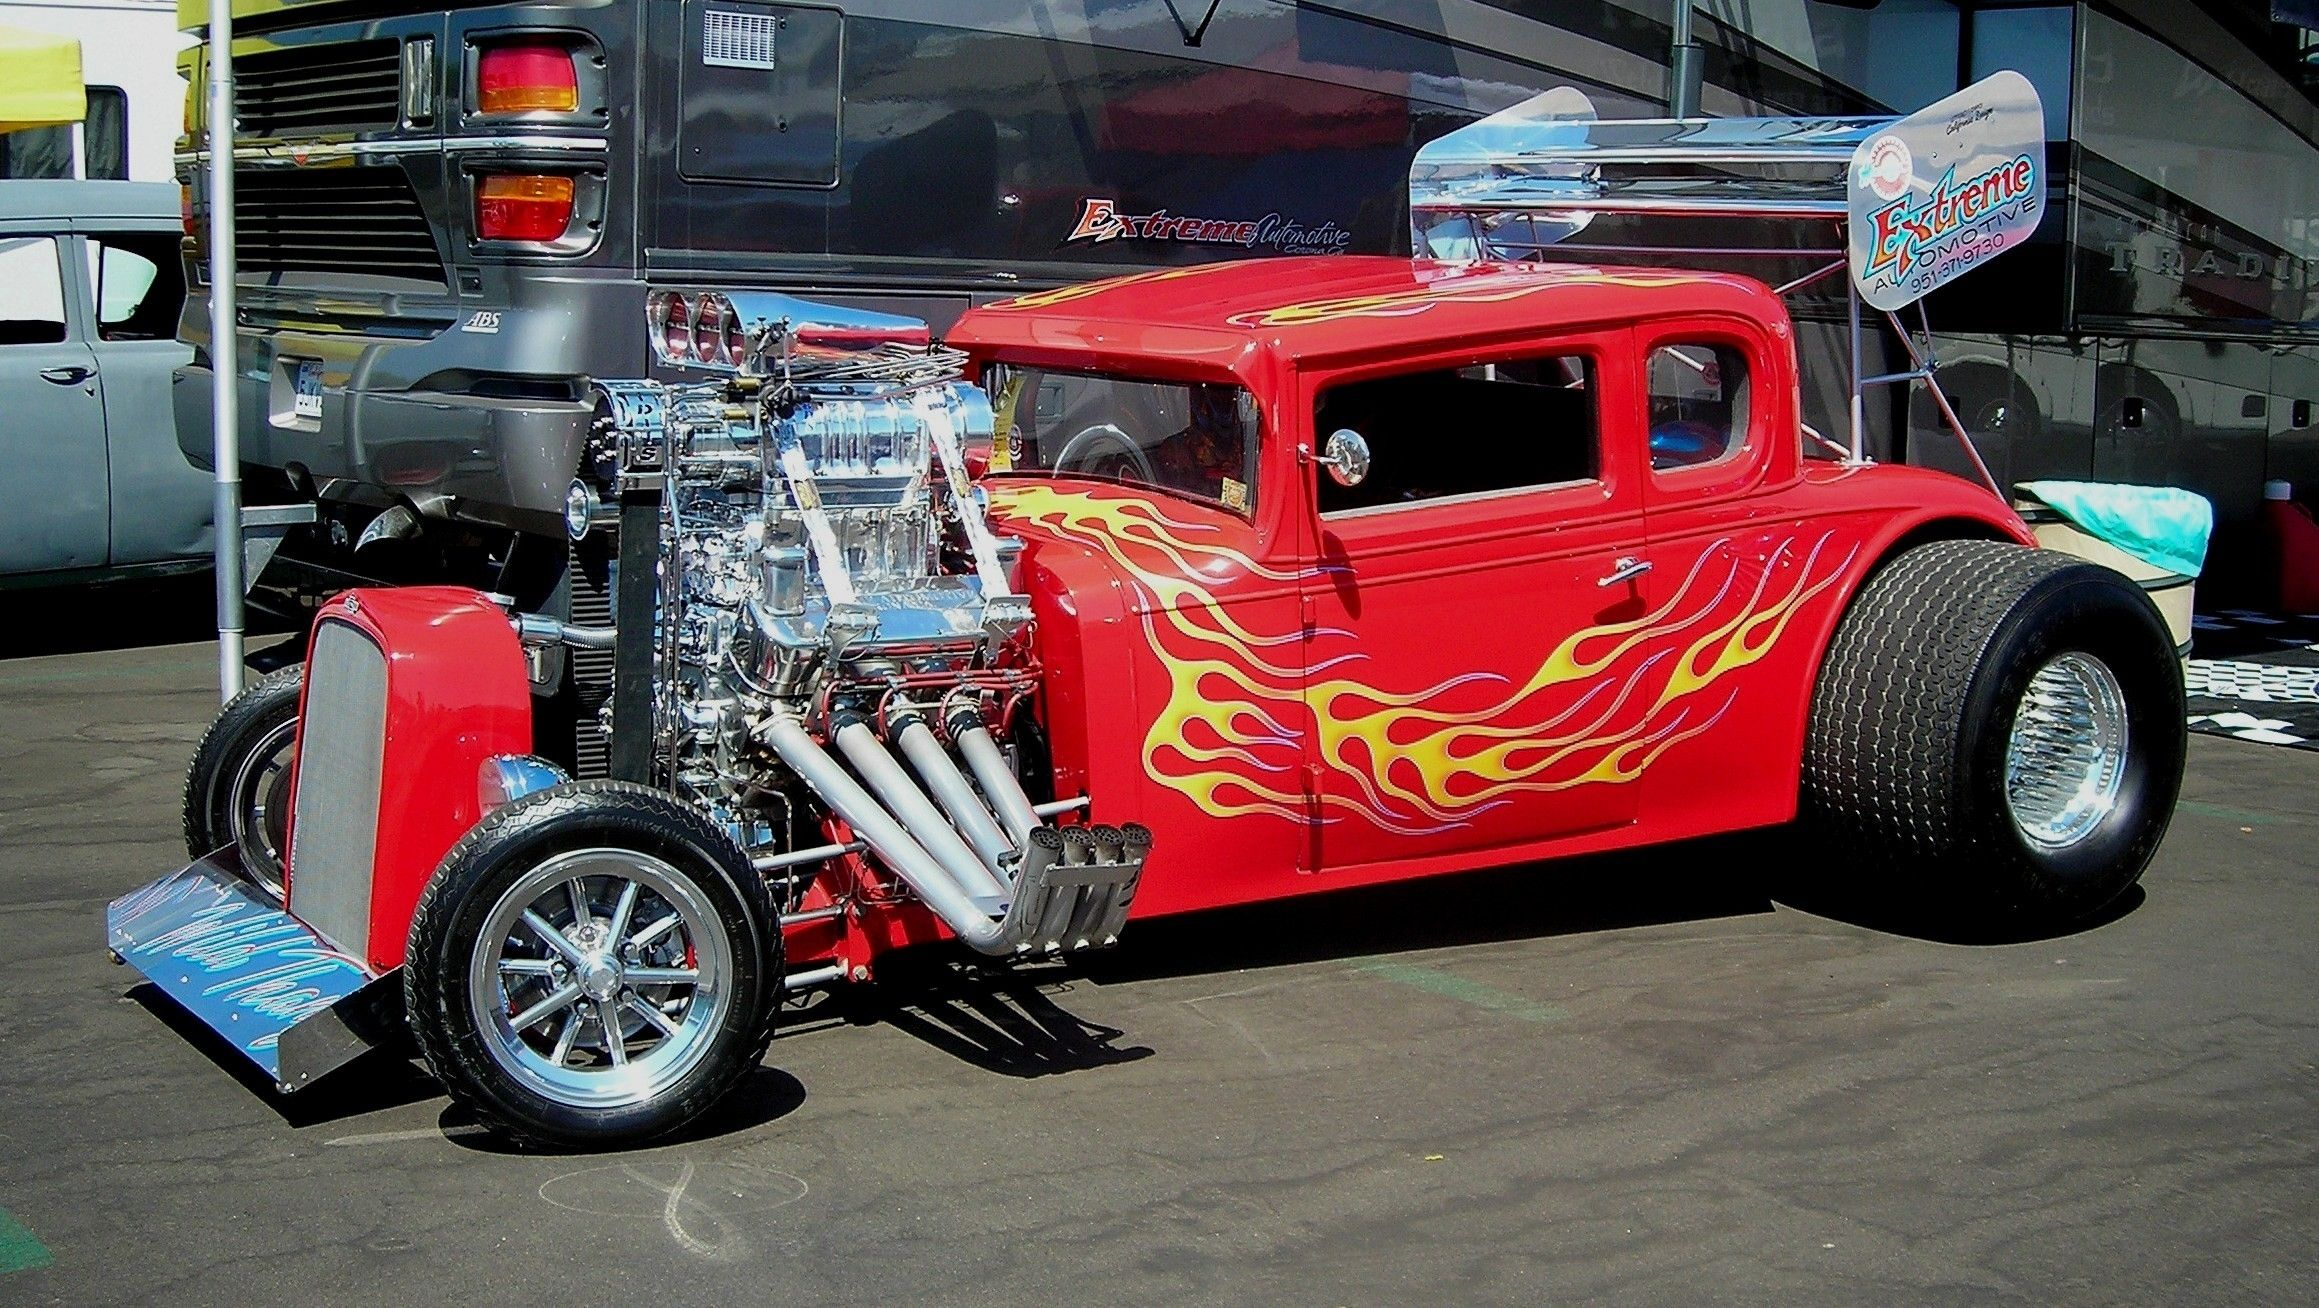 Www Old Classic Hotrods Com Vehicles Cars Custom Engine Chrome